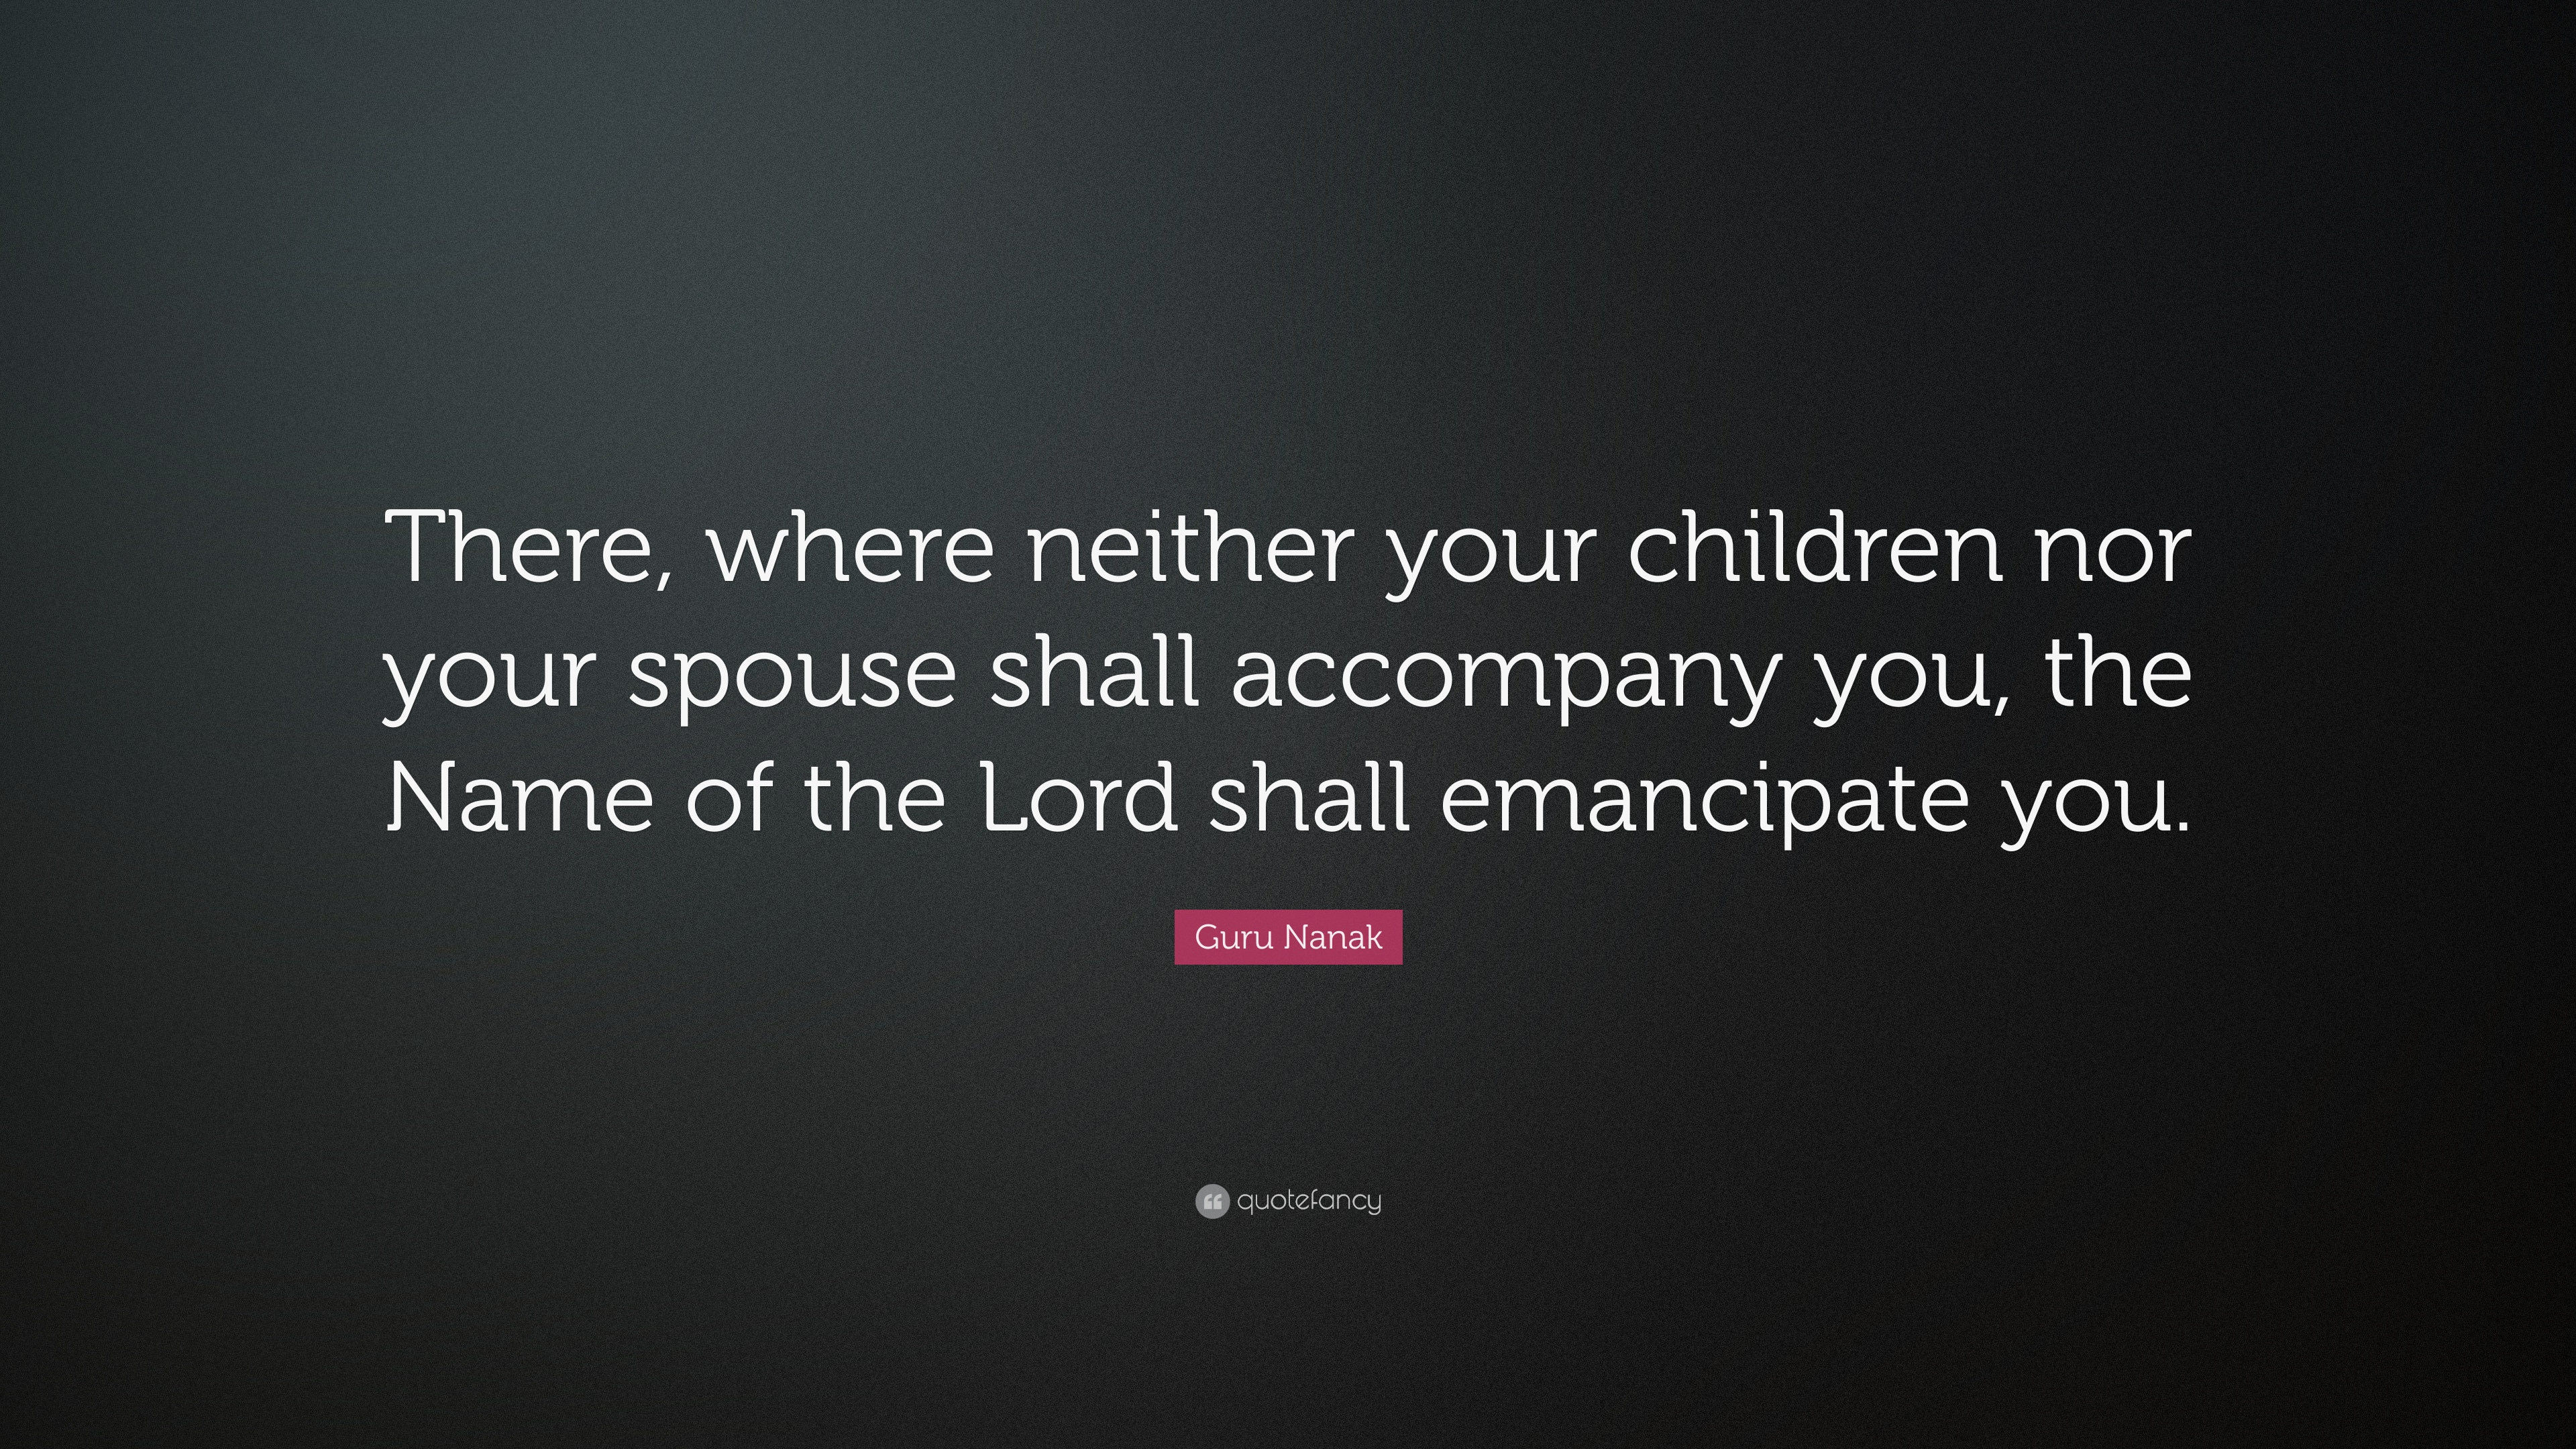 Fantastic Wallpaper Lord Name - 1035121-Guru-Nanak-Quote-There-where-neither-your-children-nor-your-spouse  Trends_216772.jpg